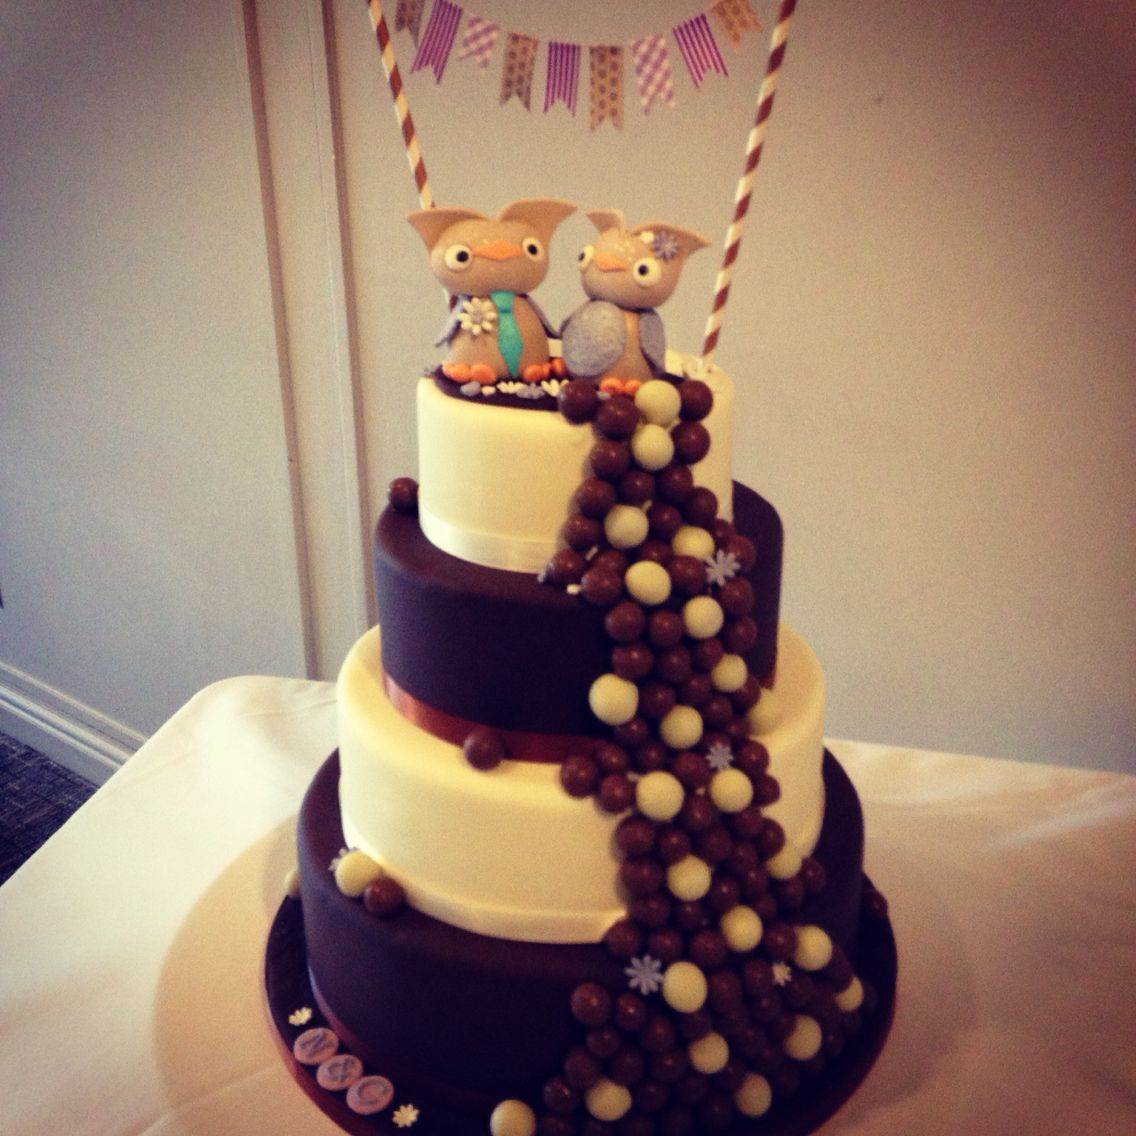 4 tier owl wedding cake. White chocolate and dark chocolate tiers. With a waterfall of Maltesers